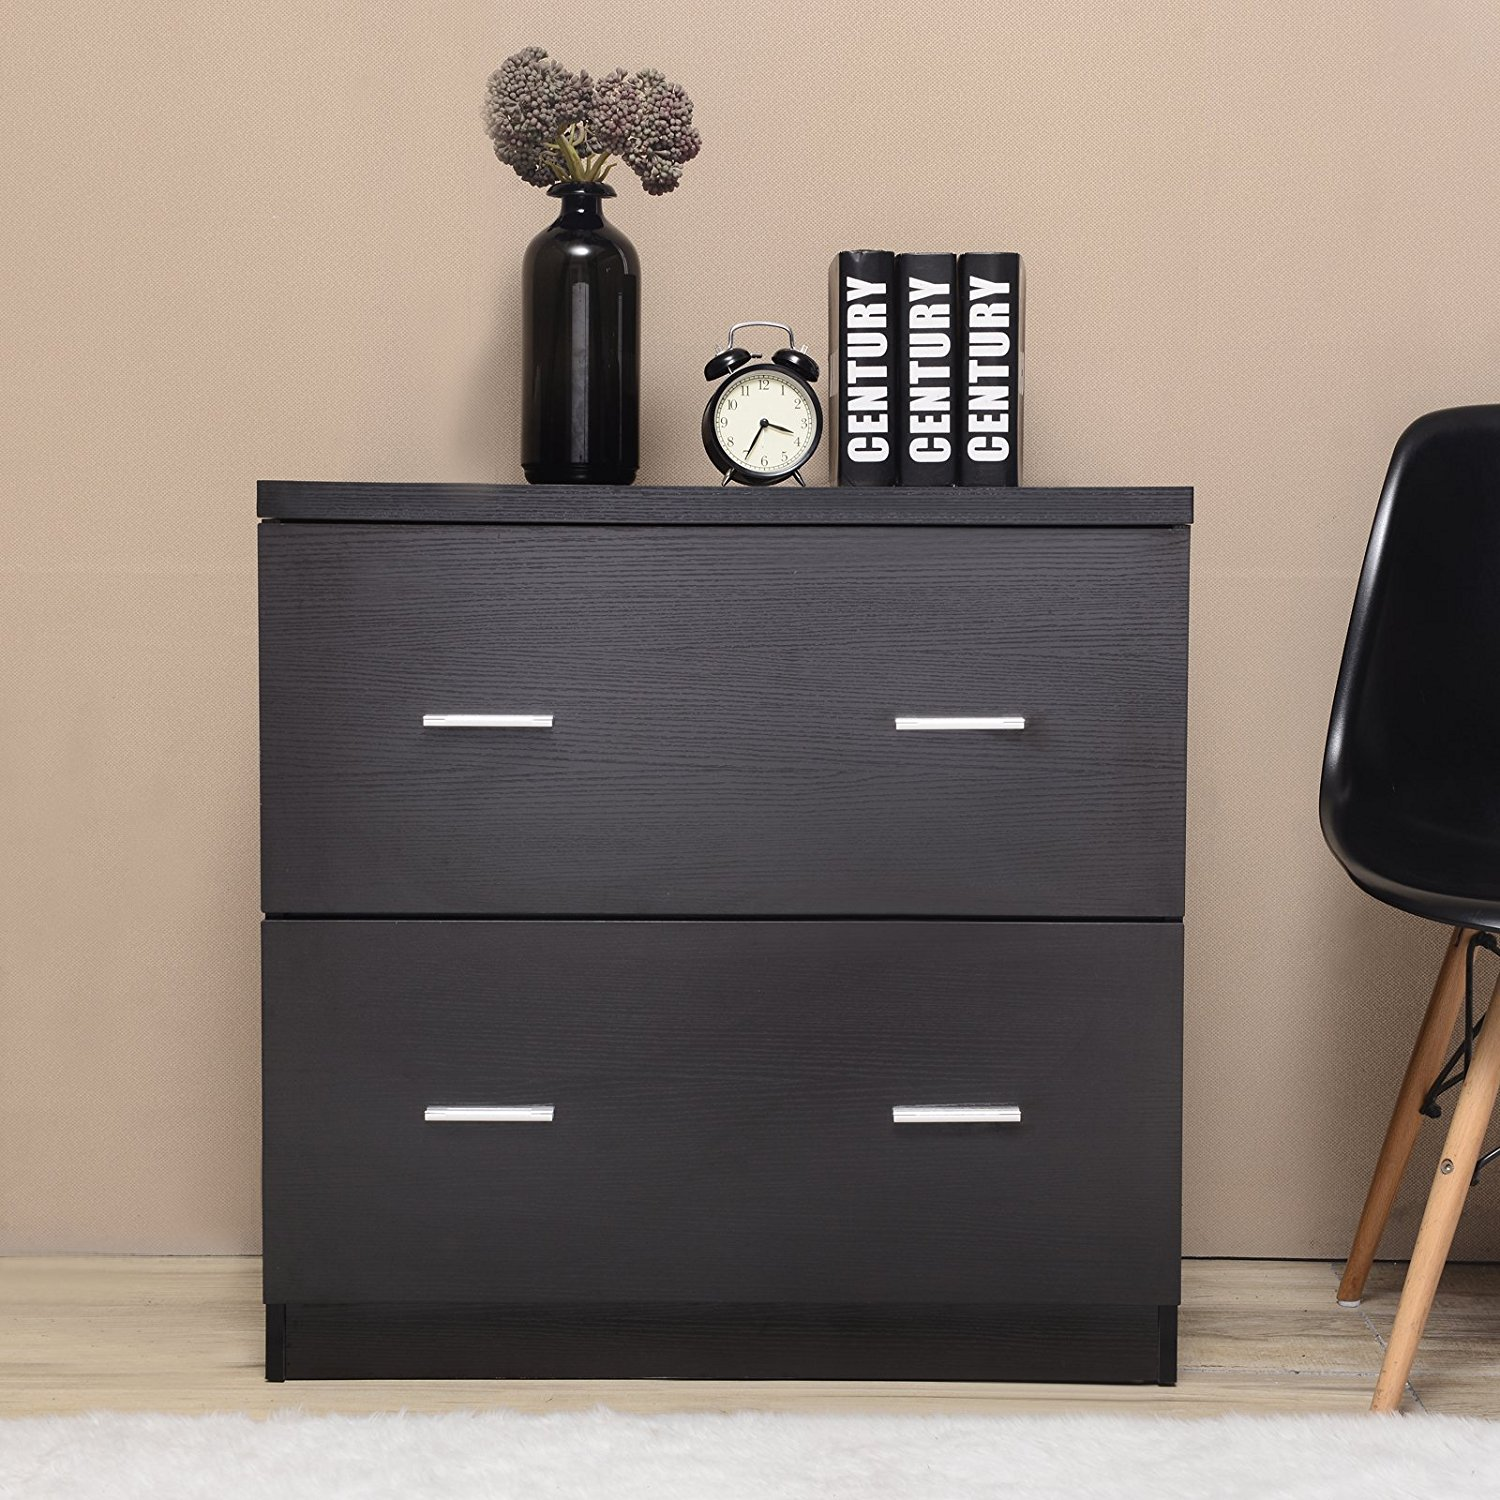 Uenjoy 2-Drawer Lateral File Cabinet,18-Inch Deep, Black